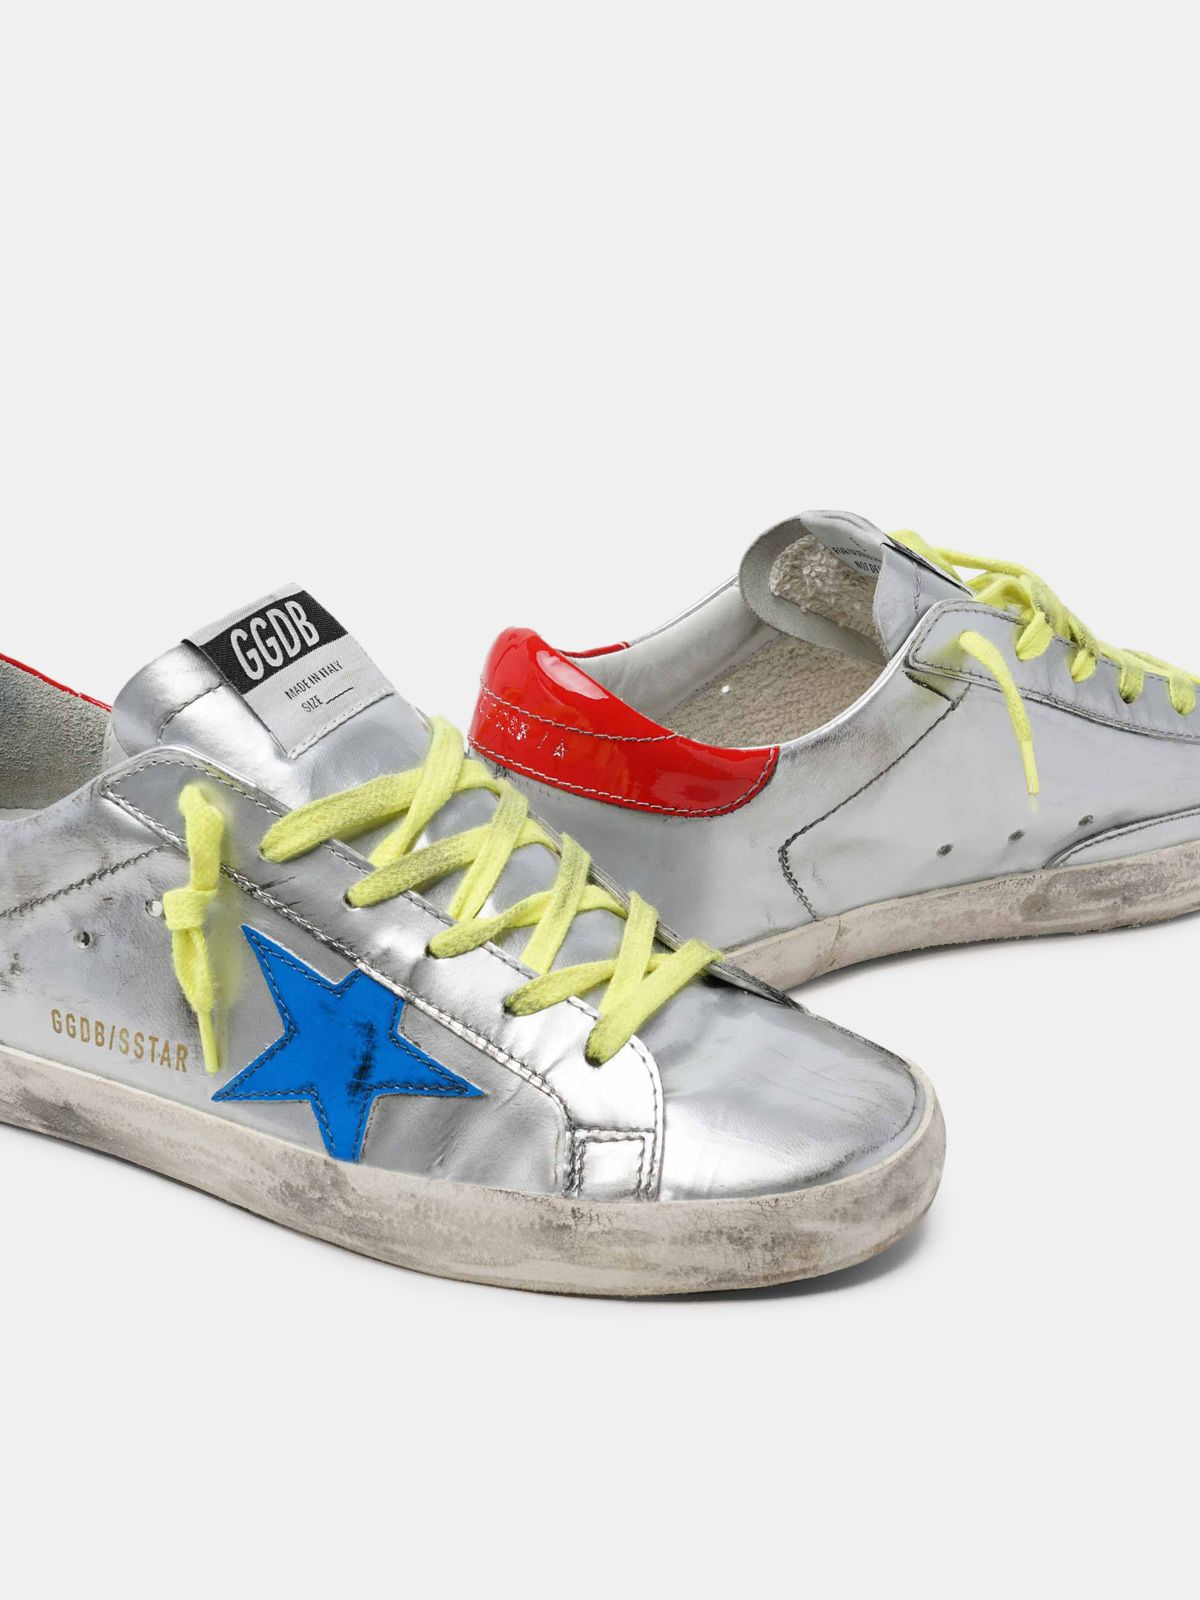 Golden Goose - Sneakers Super-Star argentate con stella blu in